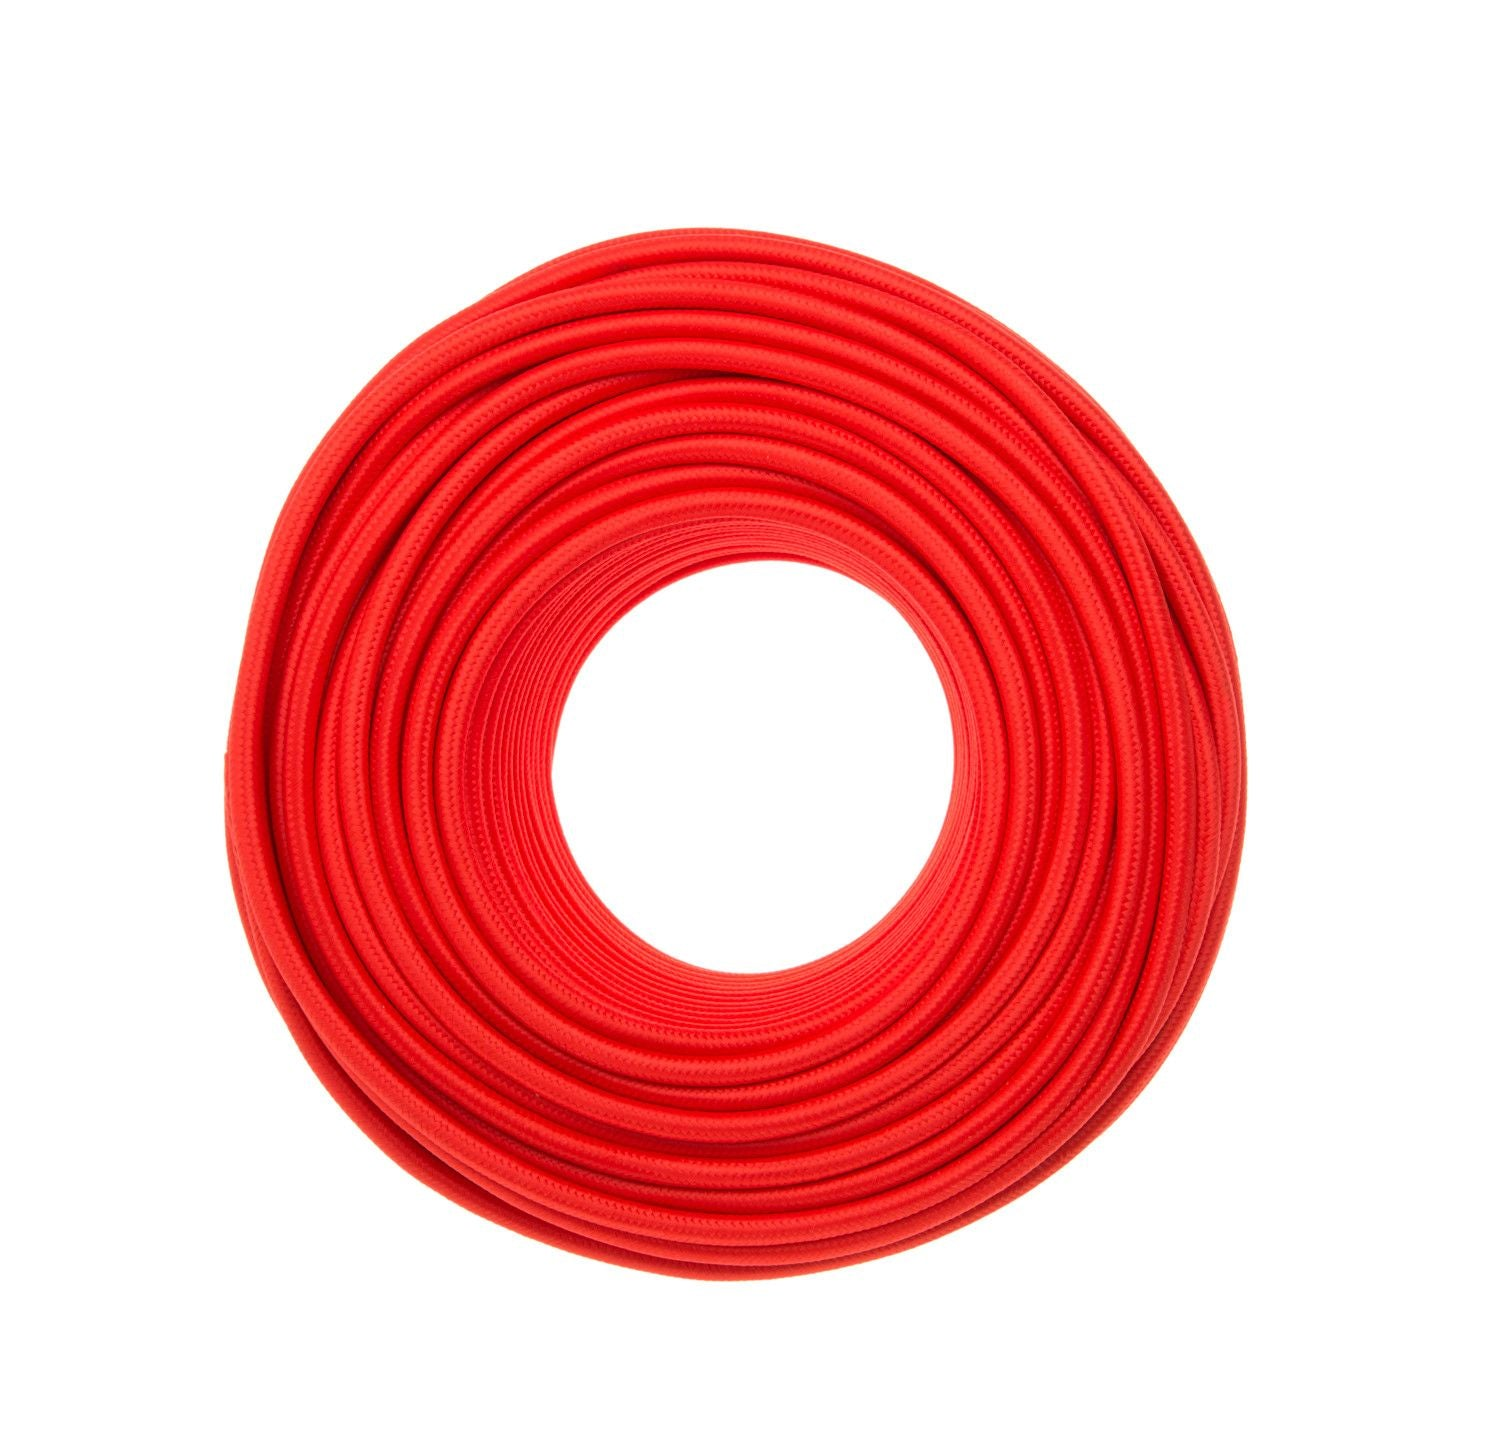 Cloth Covered Wire - Red | Color Cord Company